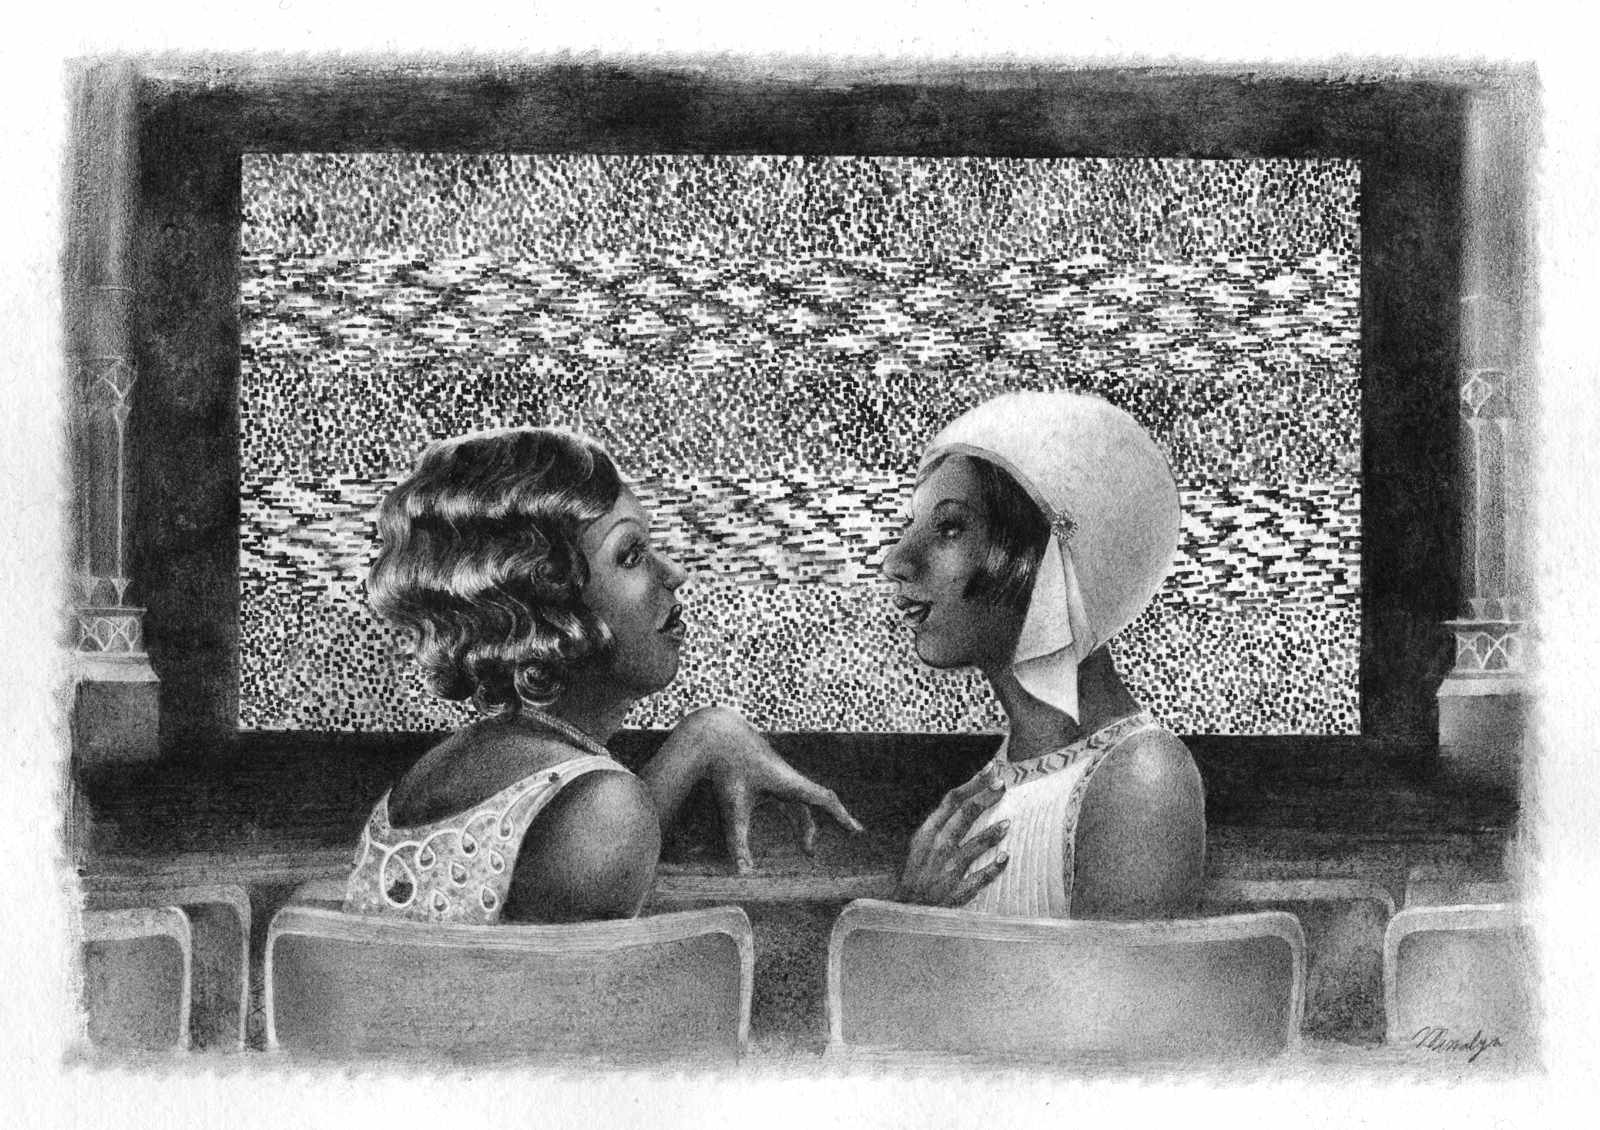 Conversation between two flappers at the movies in the 1920s, dark-skinned ladies in front of a screen of white noise.